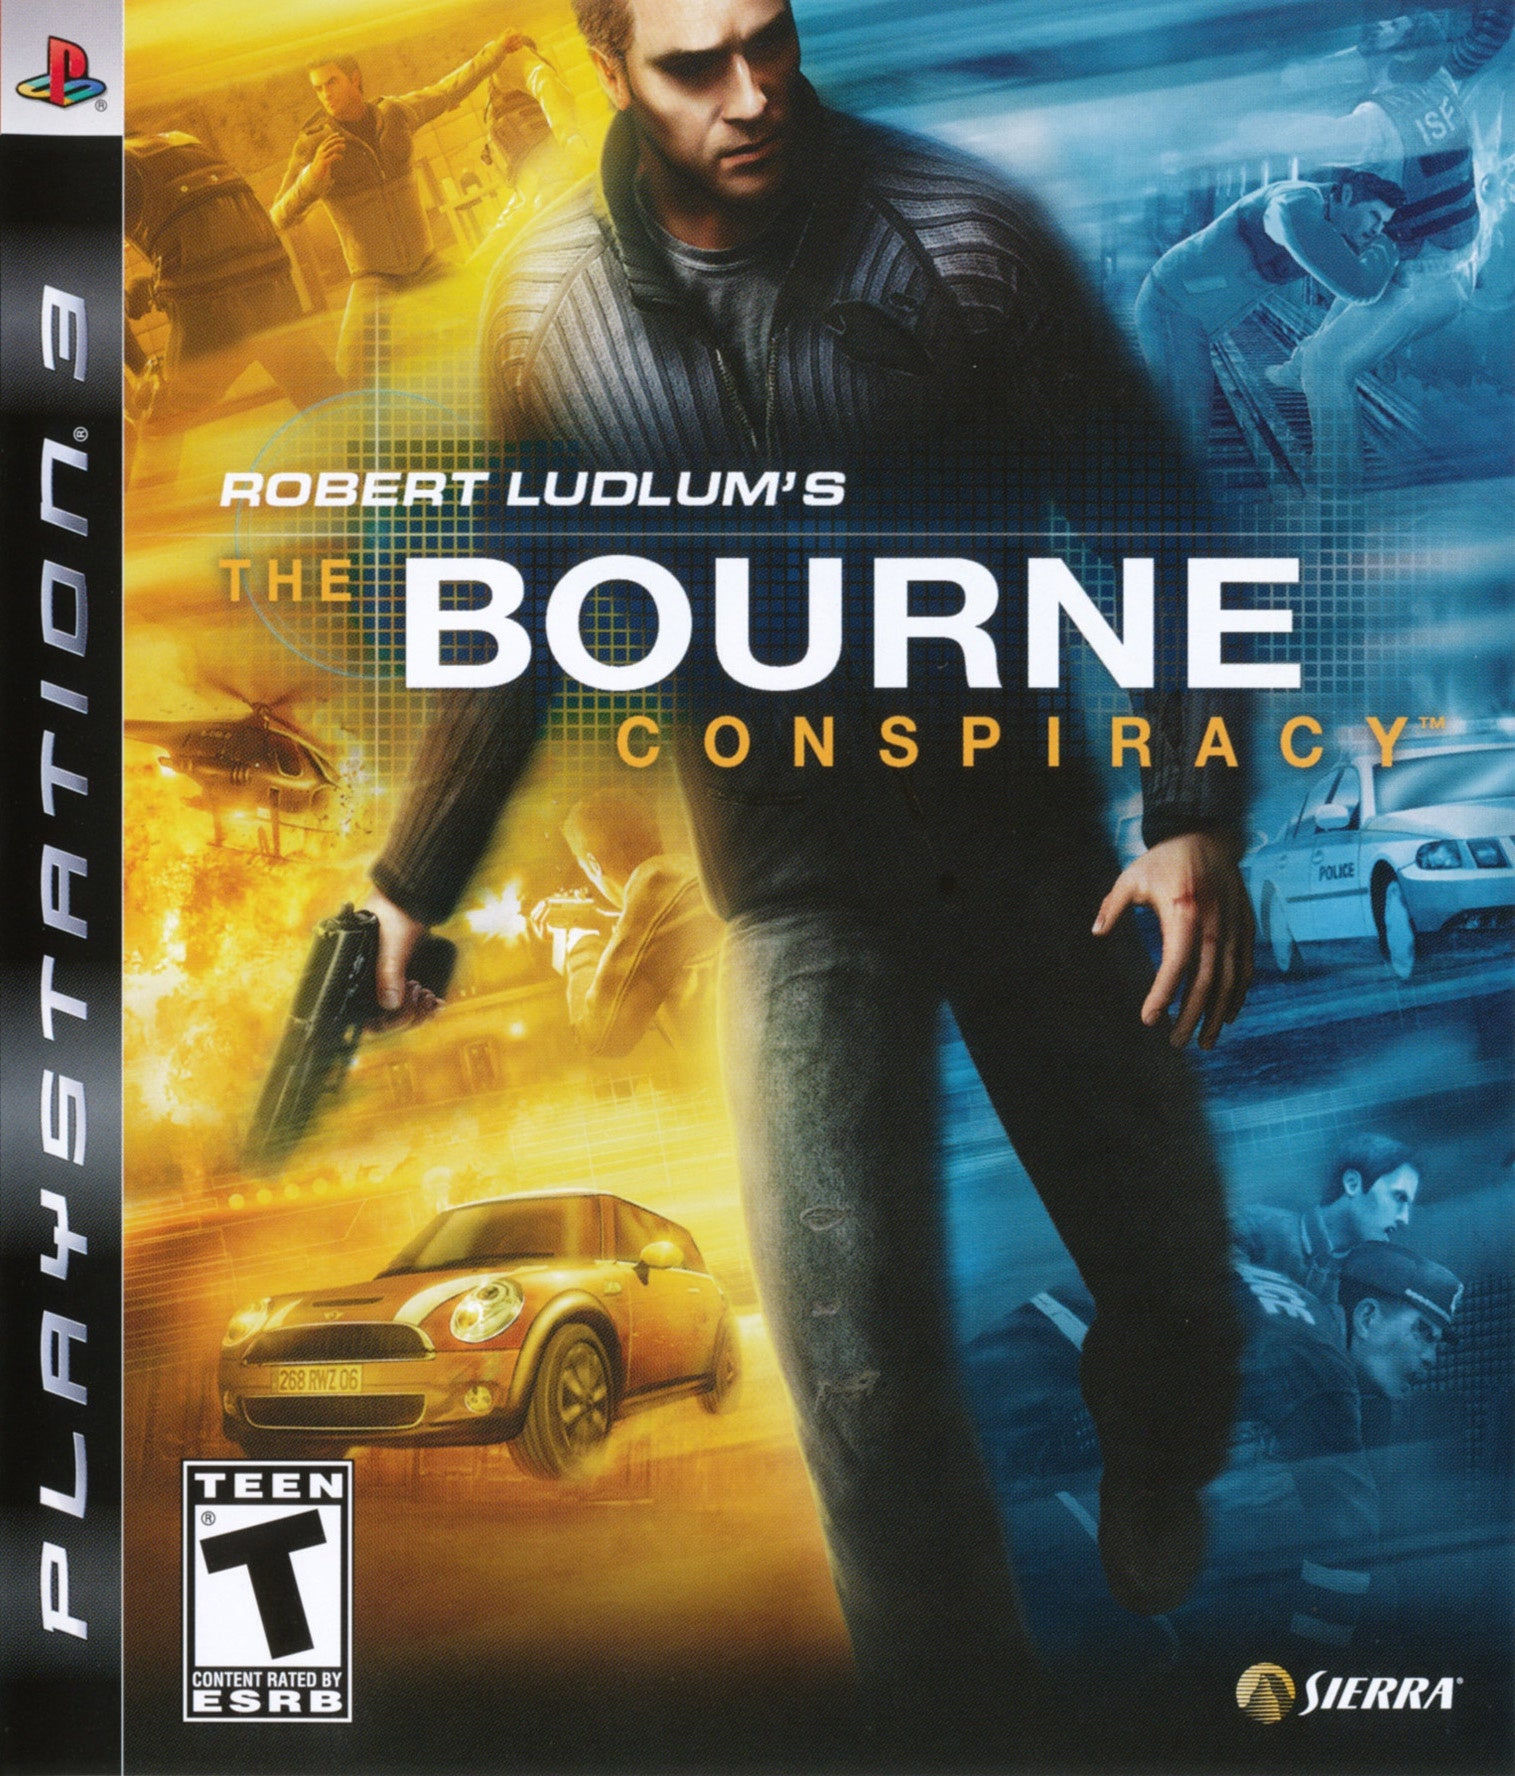 Robert Ludlum's The Bourne Conspiracy - PS3 (Pre-owned)